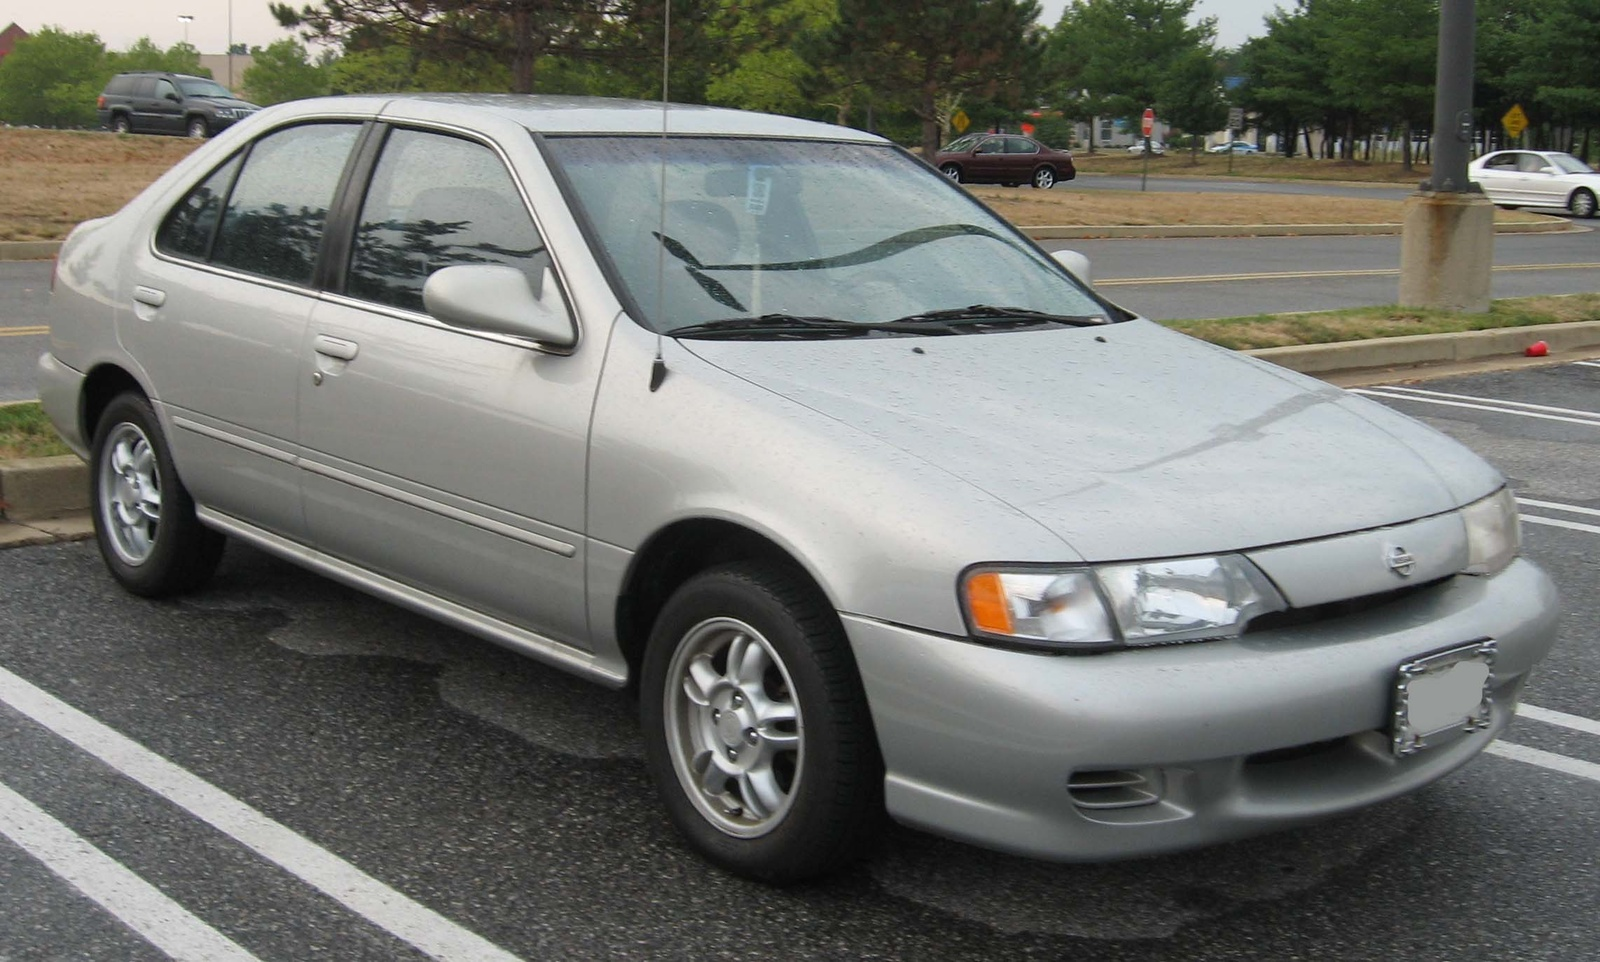 It Doesnt Appear So The Body Styles Are Completely Different And Two Have Bumper Designs Picture Is A 1999 Nissan Sentra